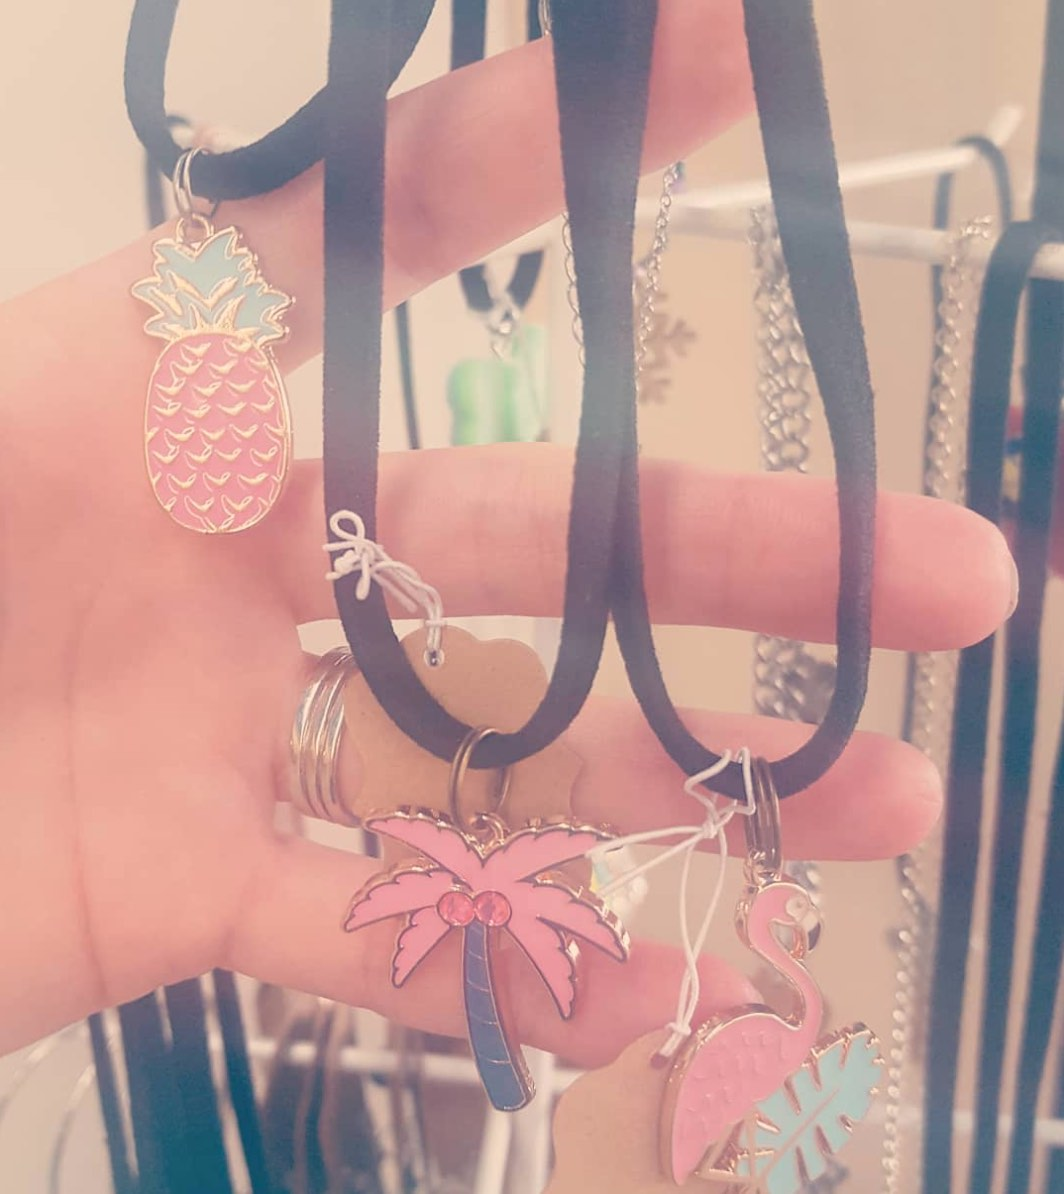 Summer Jewelry 2018: Flamingos, Pineapples, Palm Trees